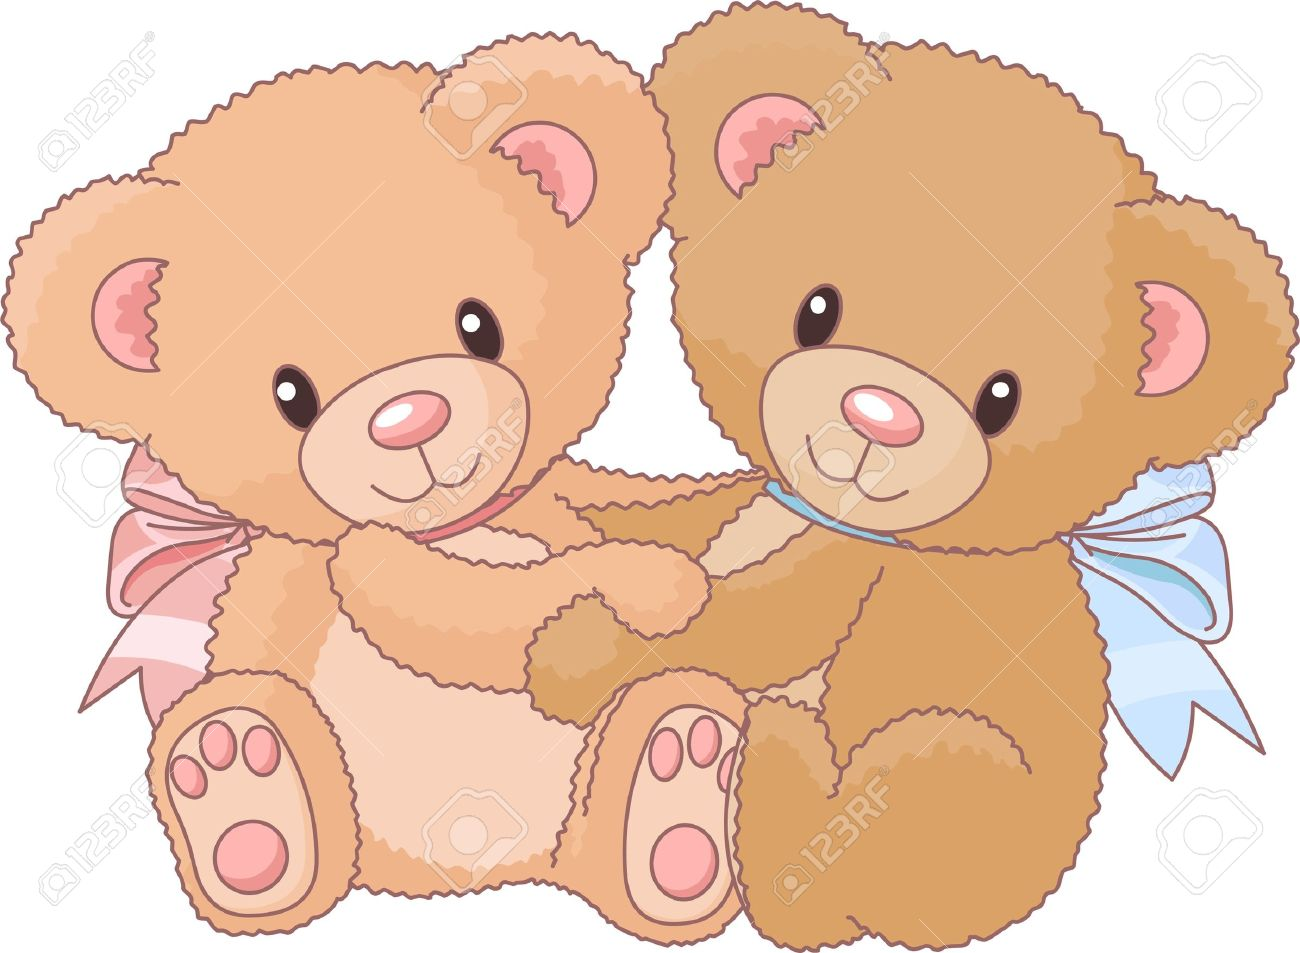 Two Cute Teddy Bears Hugging Royalty Free Cliparts, Vectors, And ...